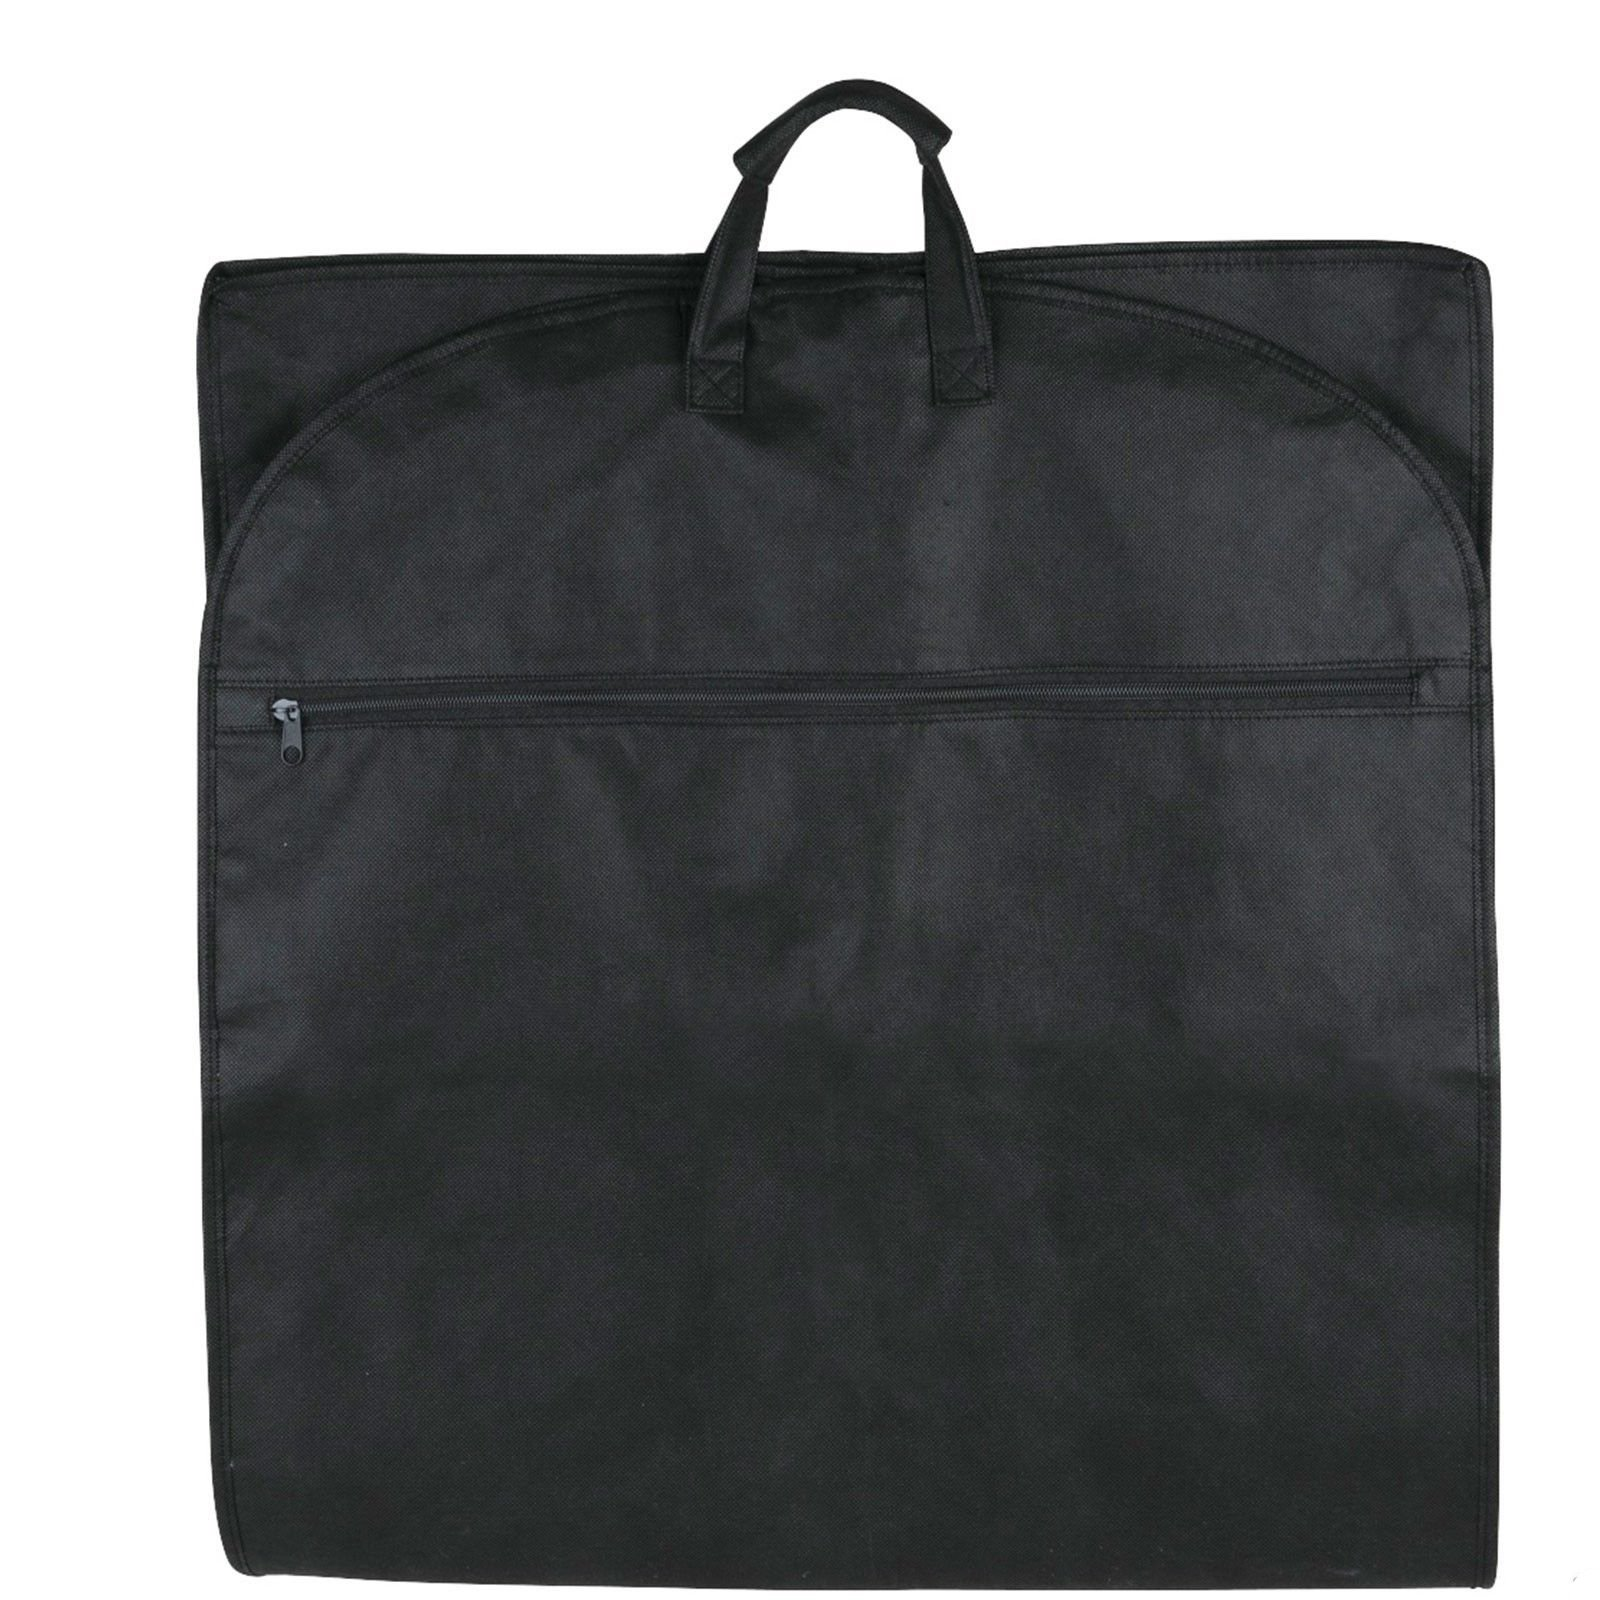 NEW 48'' Breathable Gusseted Travel Garment Bag Cover - For Suits Dress, Clothes, Tux, Jersey Storage Travel (1 PACK) by ImpecGear (Image #3)